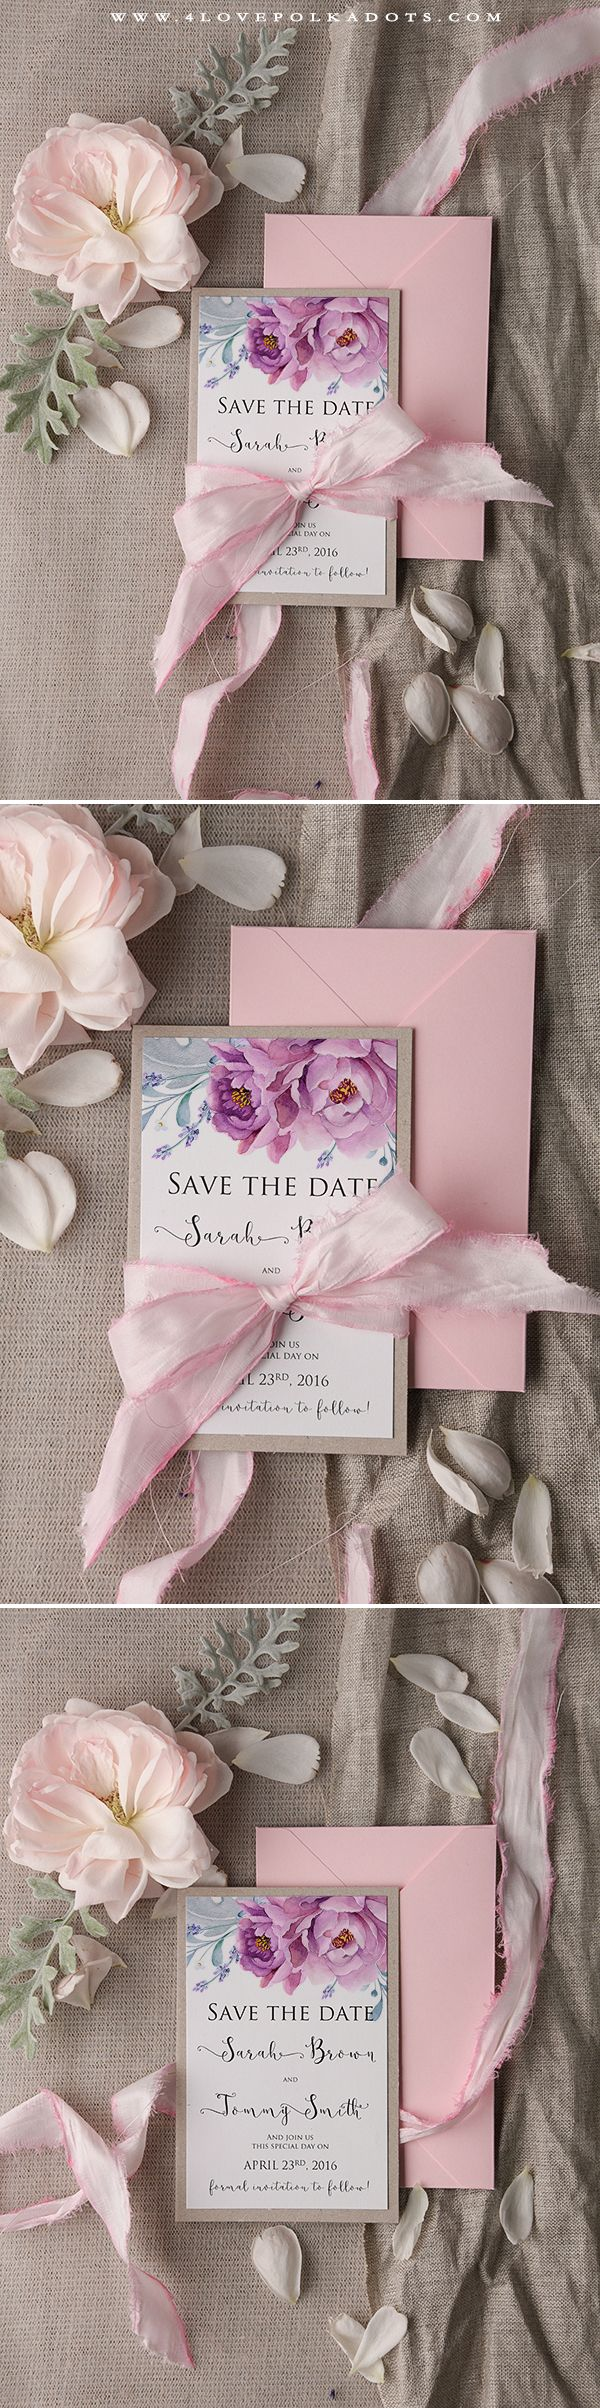 Wedding Save the Date Card with Flowers #romantic #summerwedding #flowers